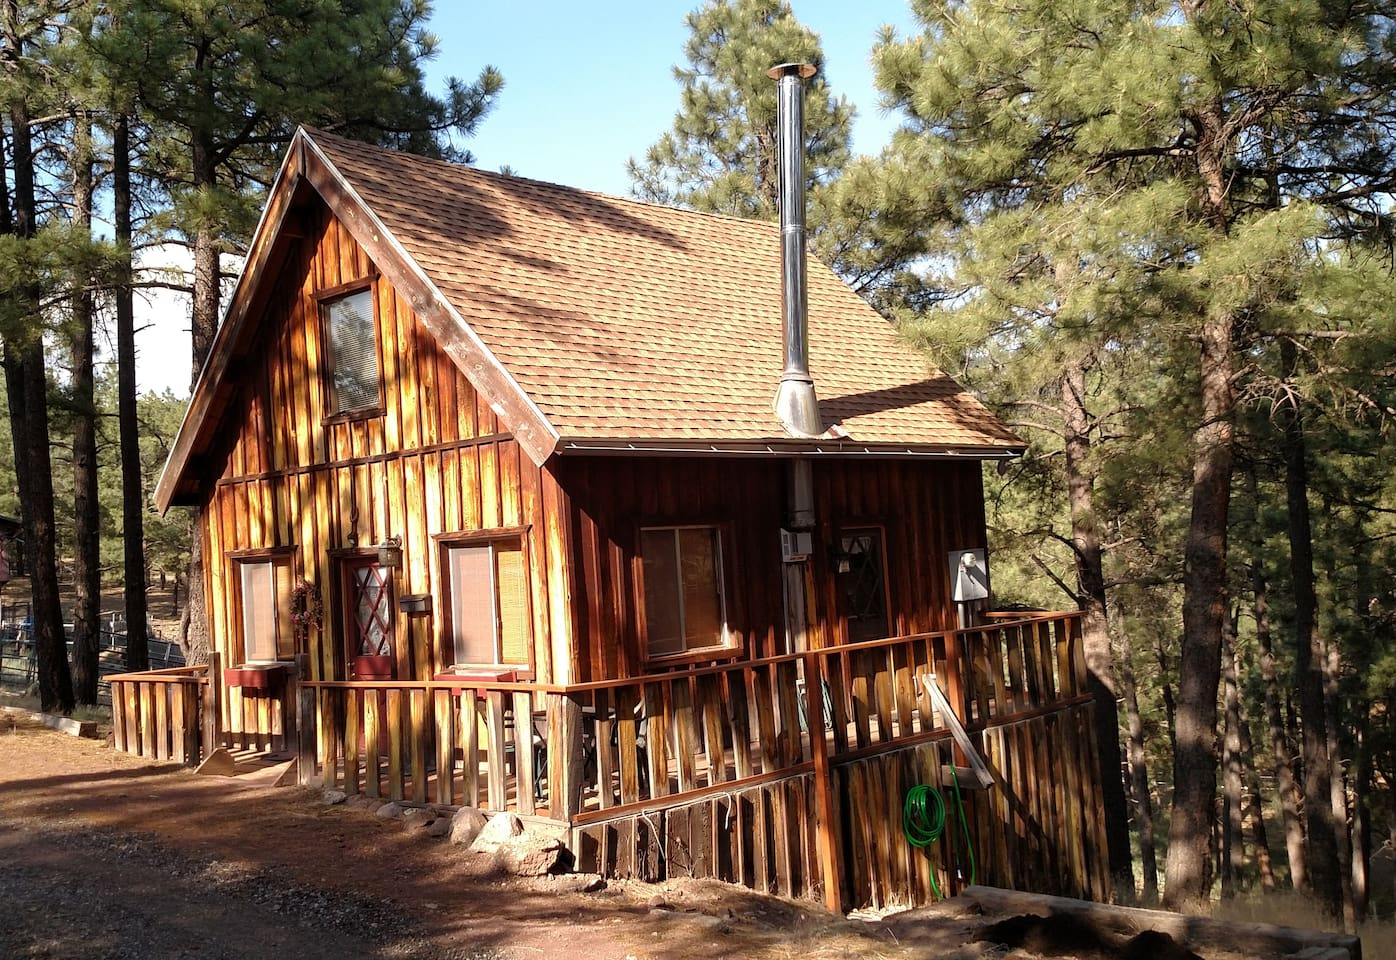 arizona thundercliffe grand states cabins for rent united rooms canyon flagstaff lodge az in